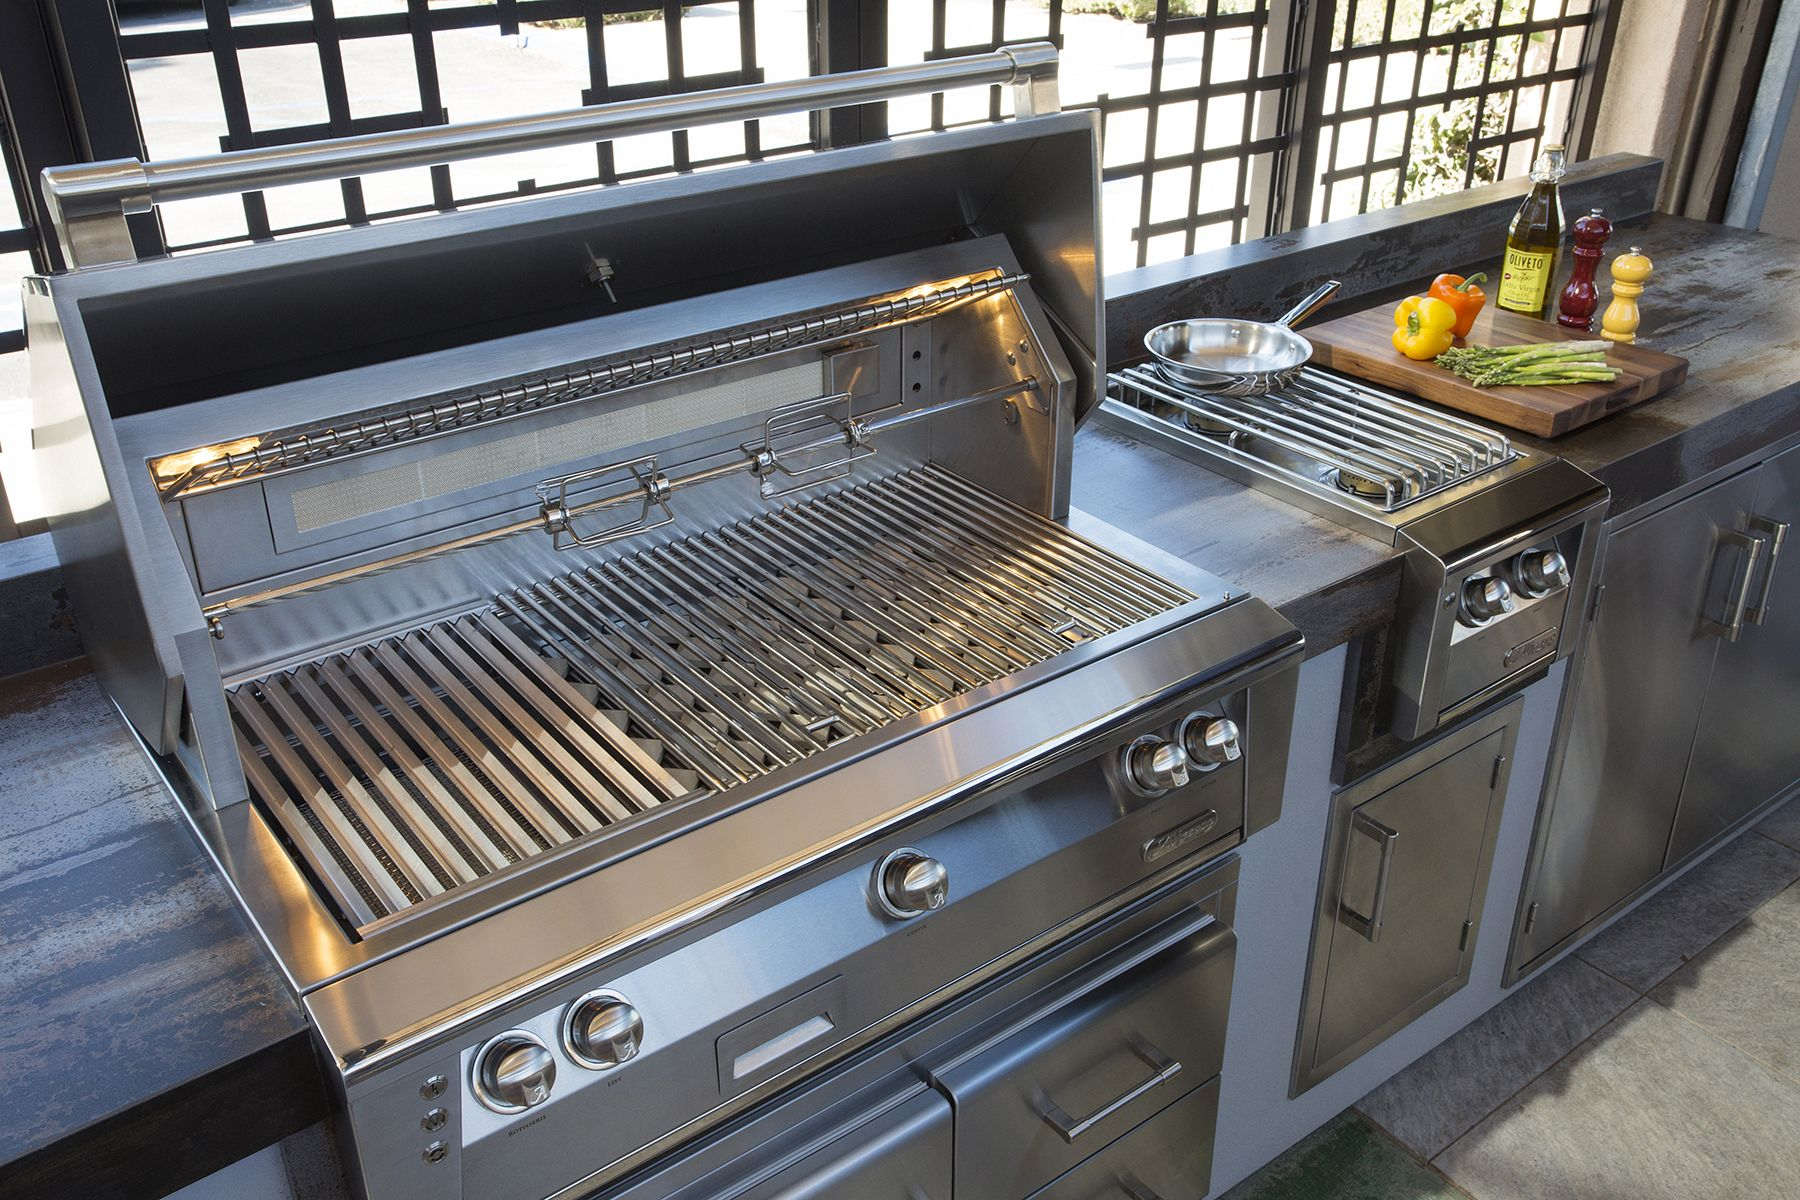 Alfresco Outdoor Kitchen With Alxe Grill Accessories And Pizza Oven Plus Outdoor Kitchen Kitchen Entertaining Guests